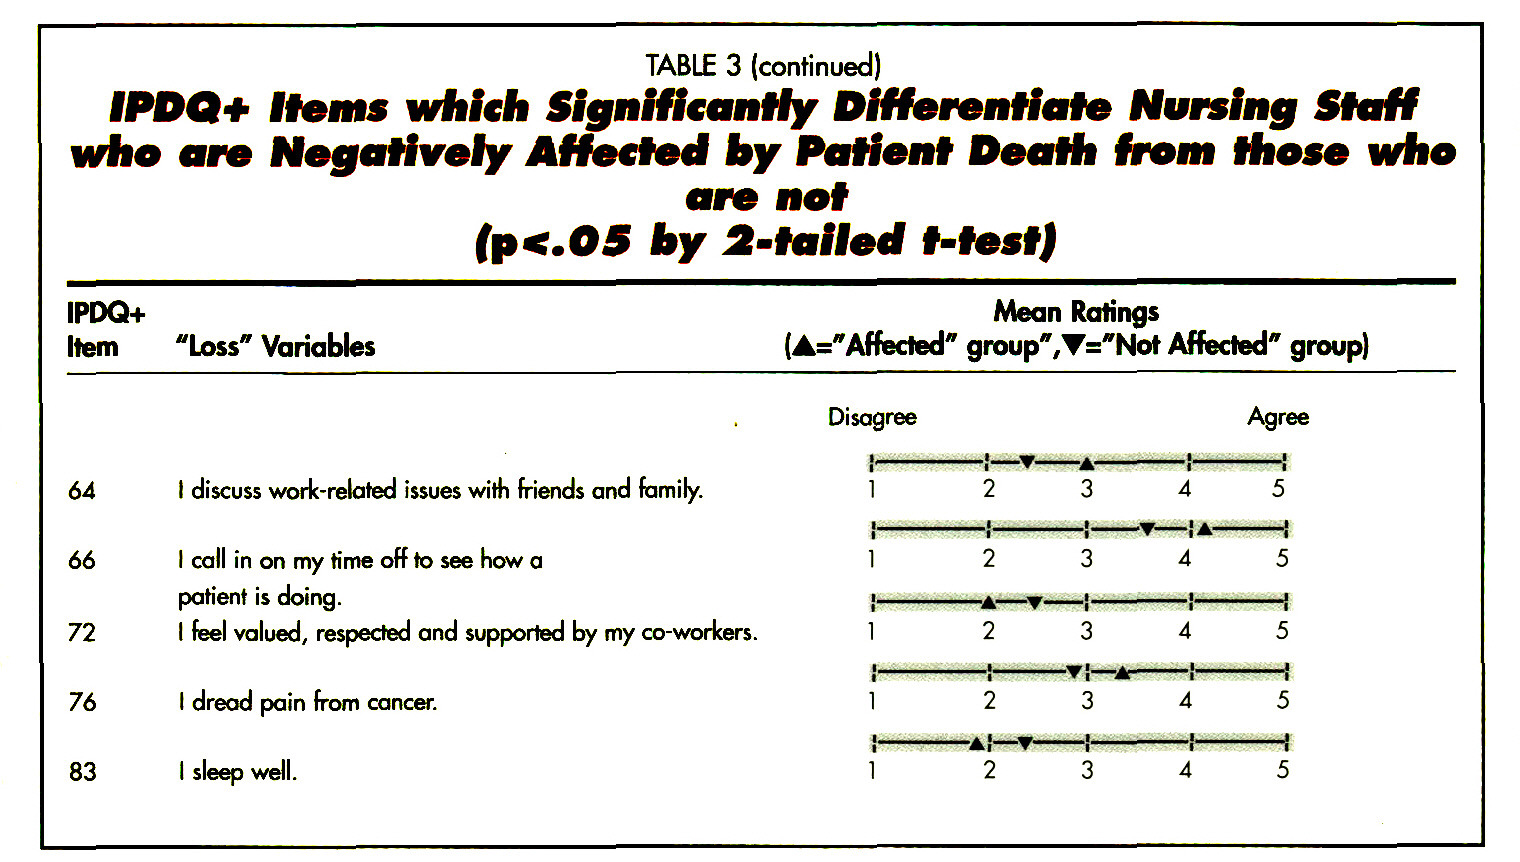 TABLE 3IPDQ+ Items which Significantly Differentiate Nursing Staff who are Negatively Affected by Patient Death tram those who are not (p<.05 by 2-tailed t-test)